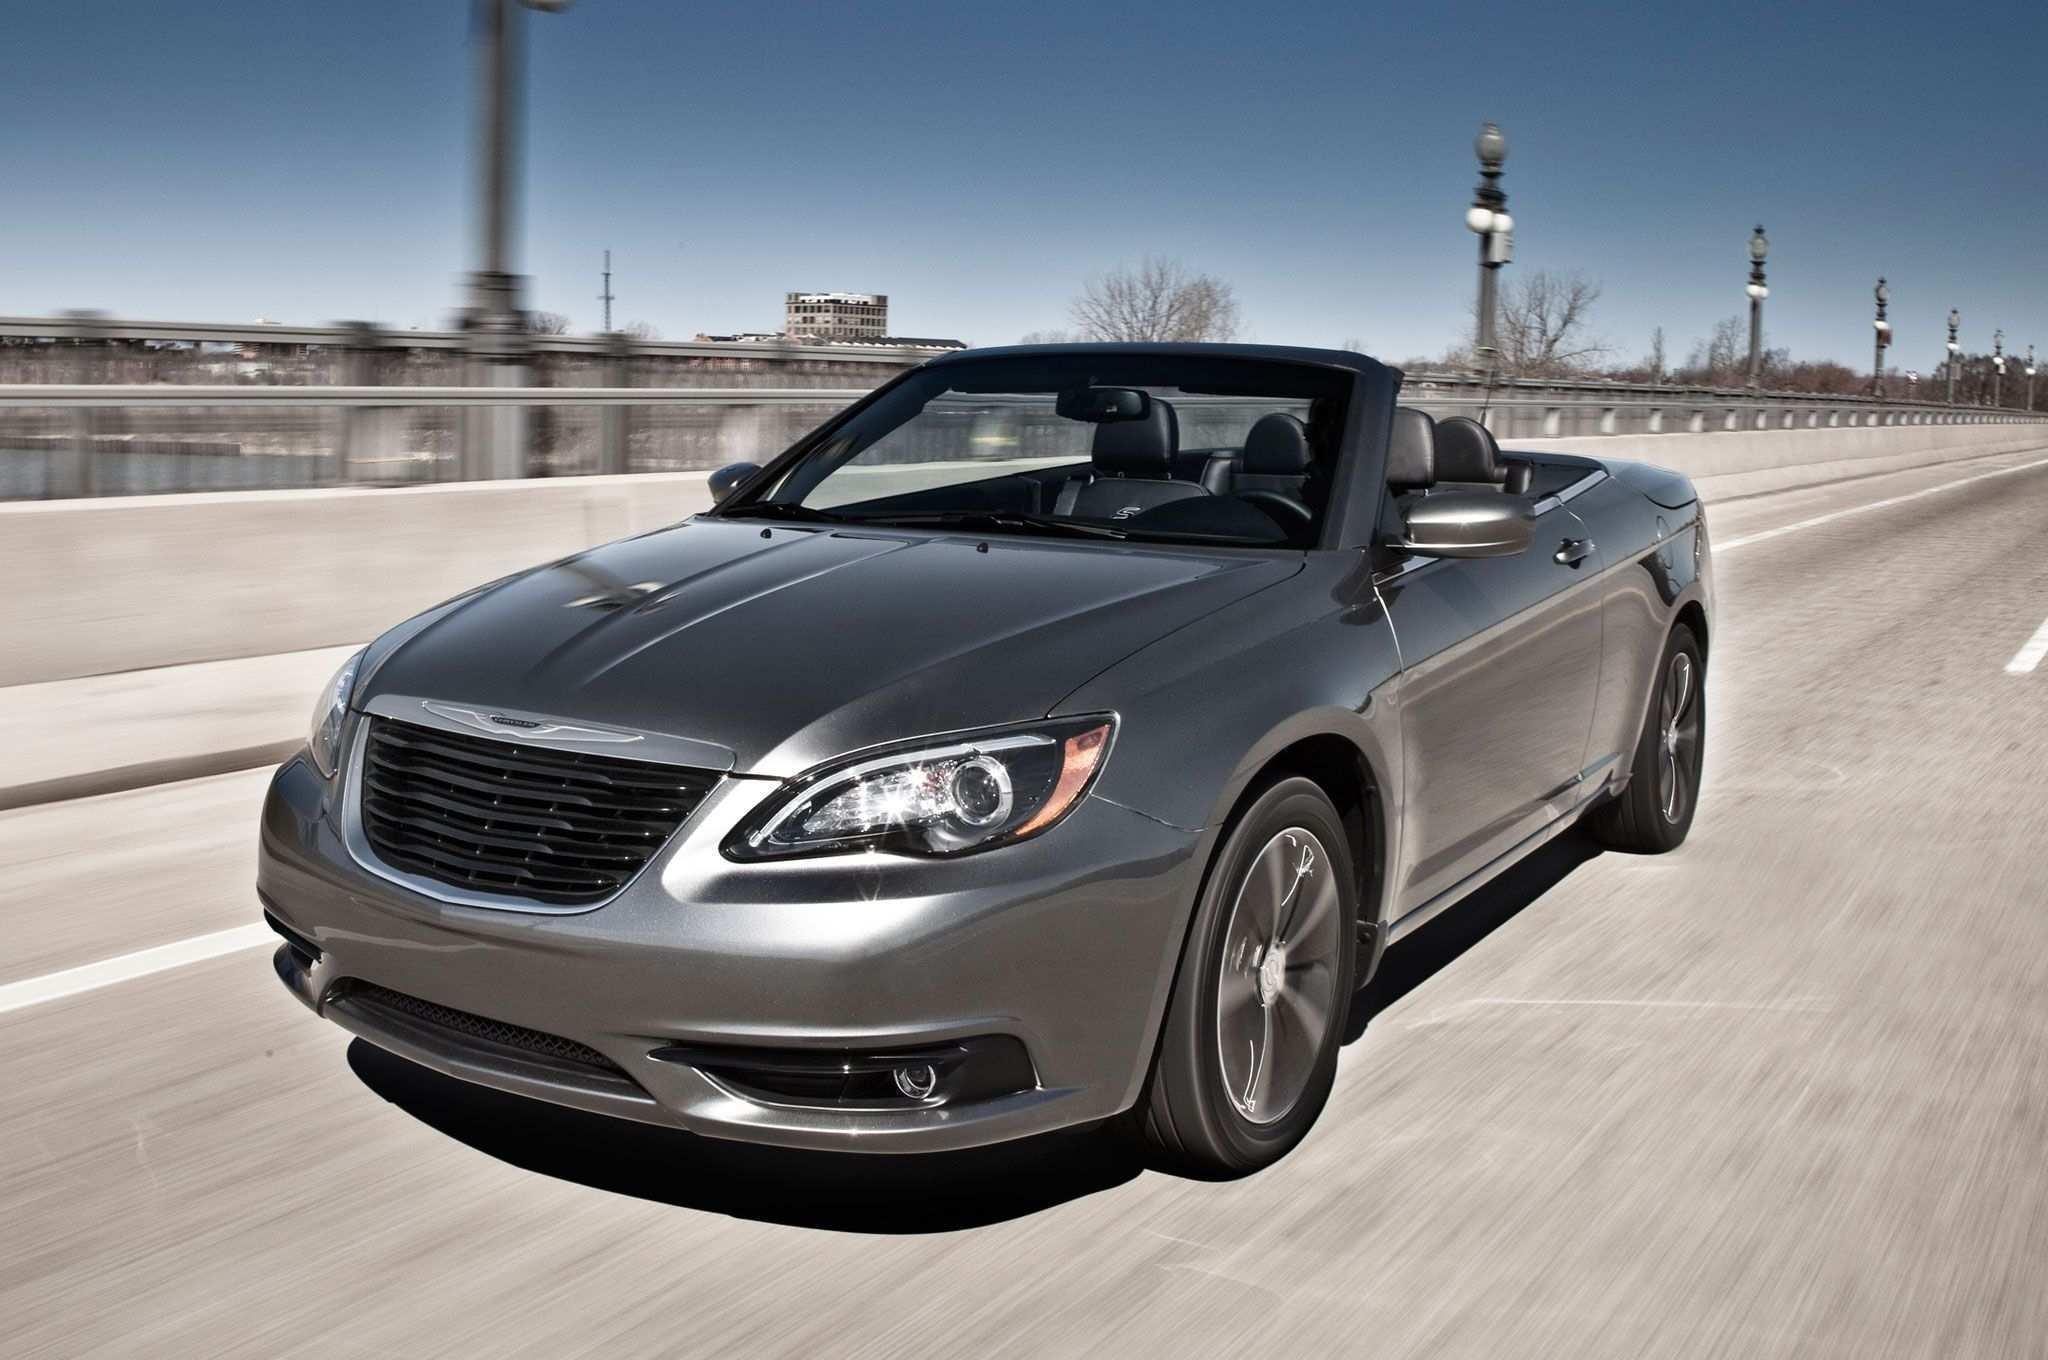 34 The Best 2020 Chrysler 200 Convertible Prices